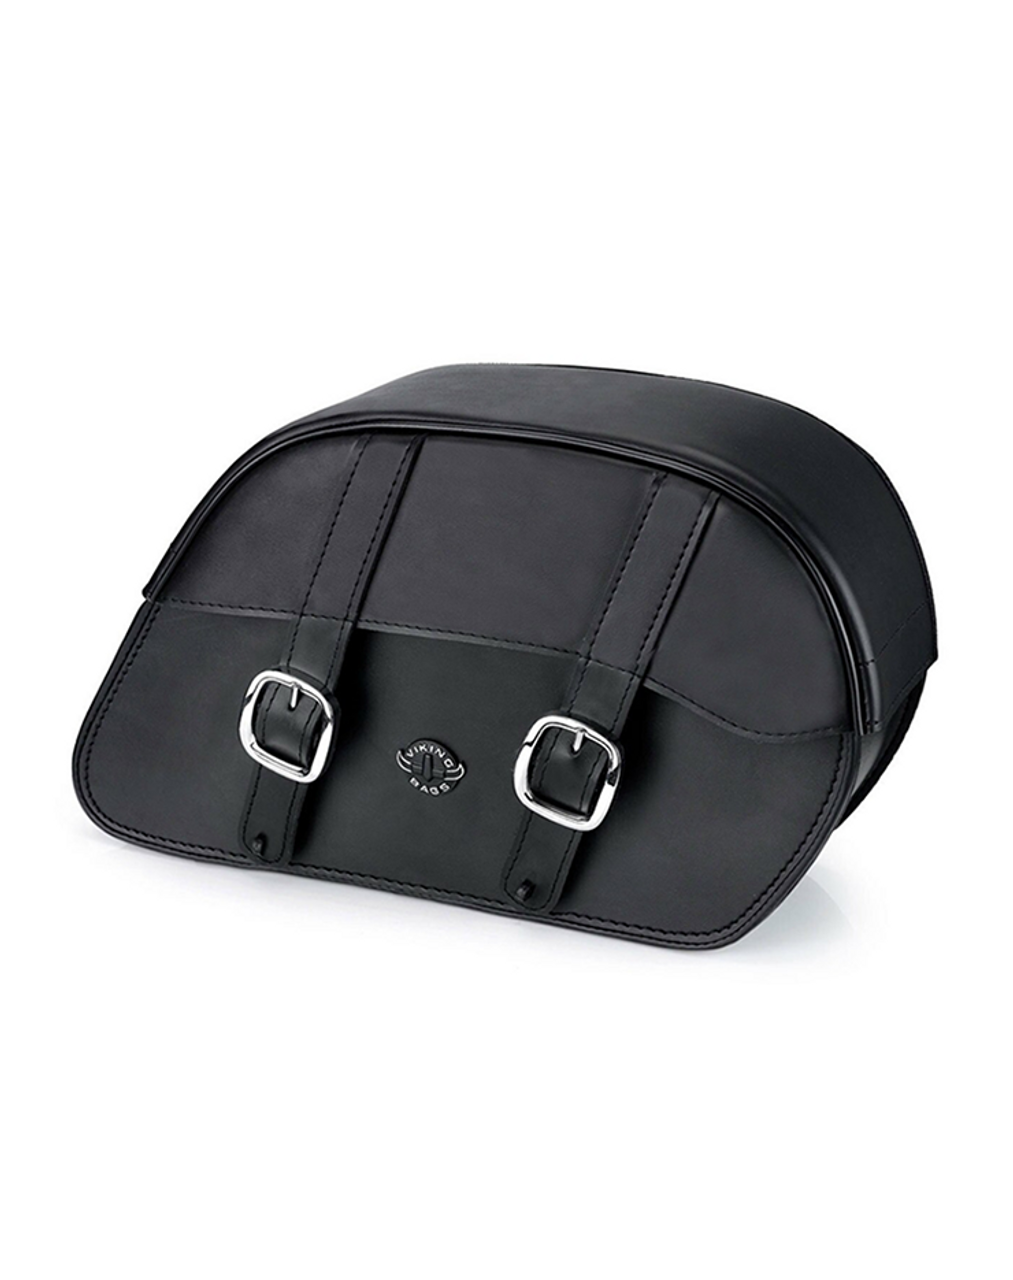 VikingBags Char Vital Padlock Double Strap Leather Medium Motorcycle Saddlebags For Harley Softail Low Rider S FXLRS Main View